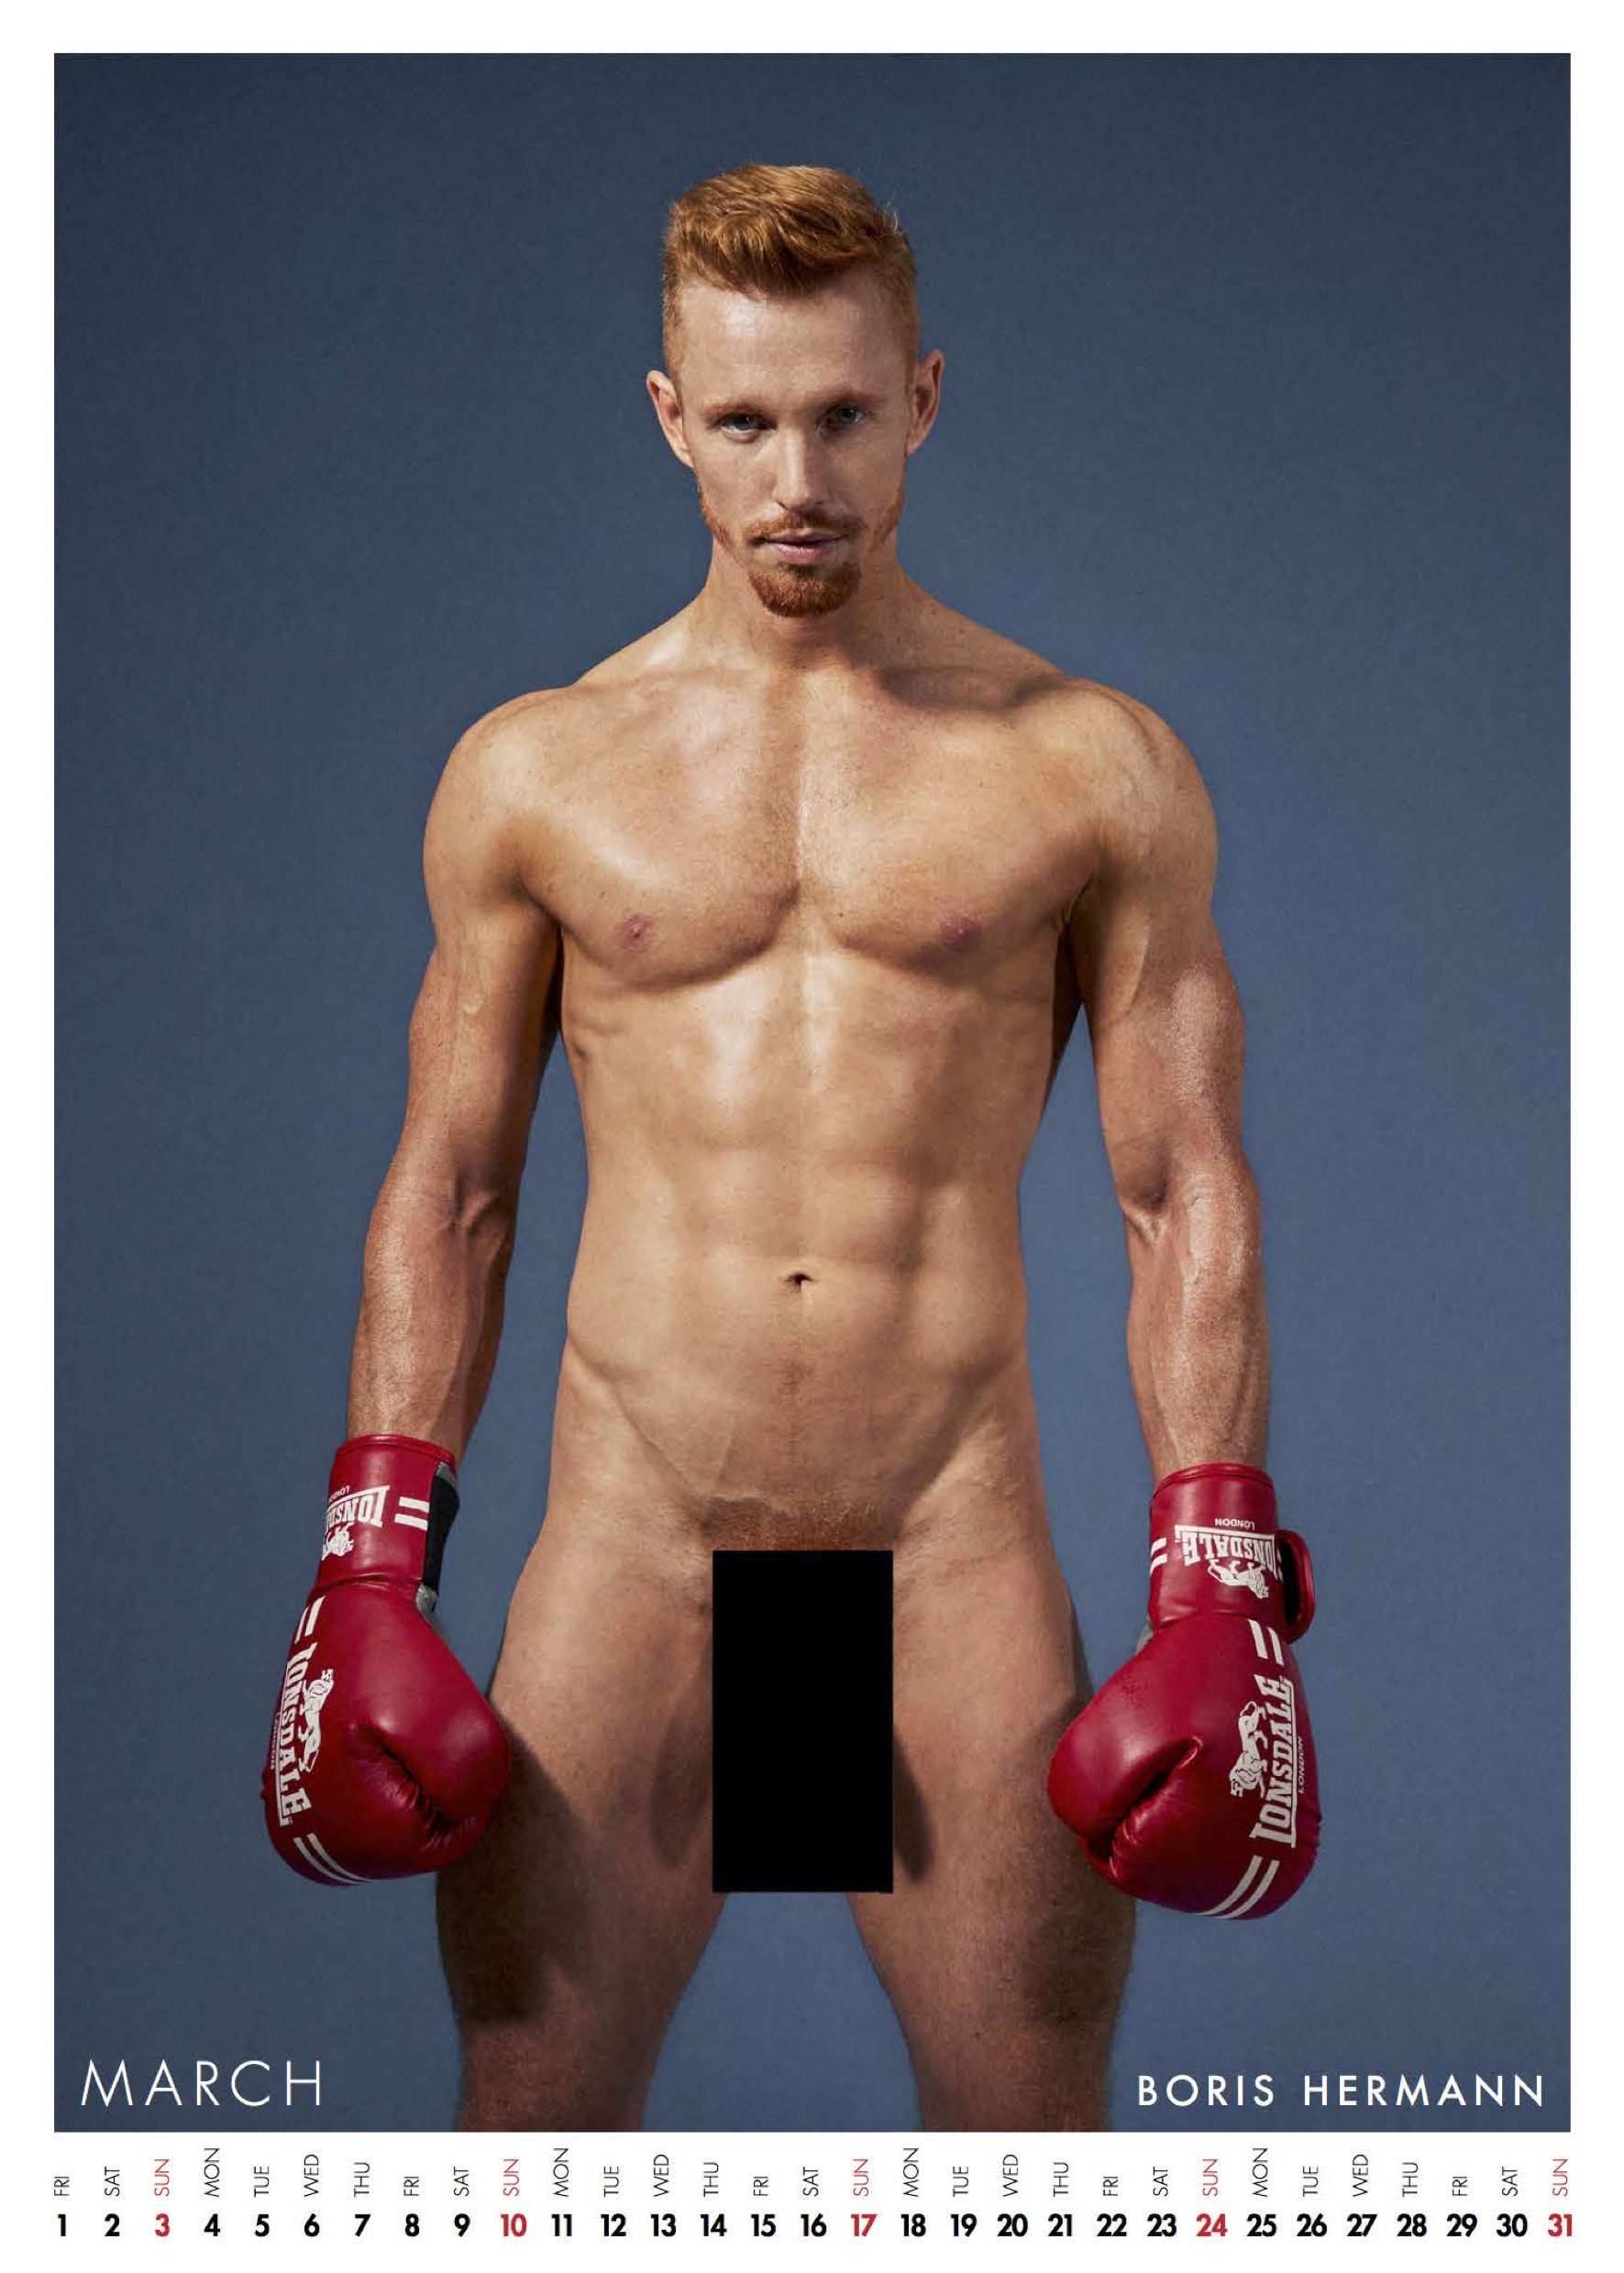 Shot By Red Hot Photographer Thomas Knights And Art Director Eliot James Frieze The Calendar Raises Money For Movember Foundations Prostate Cancer